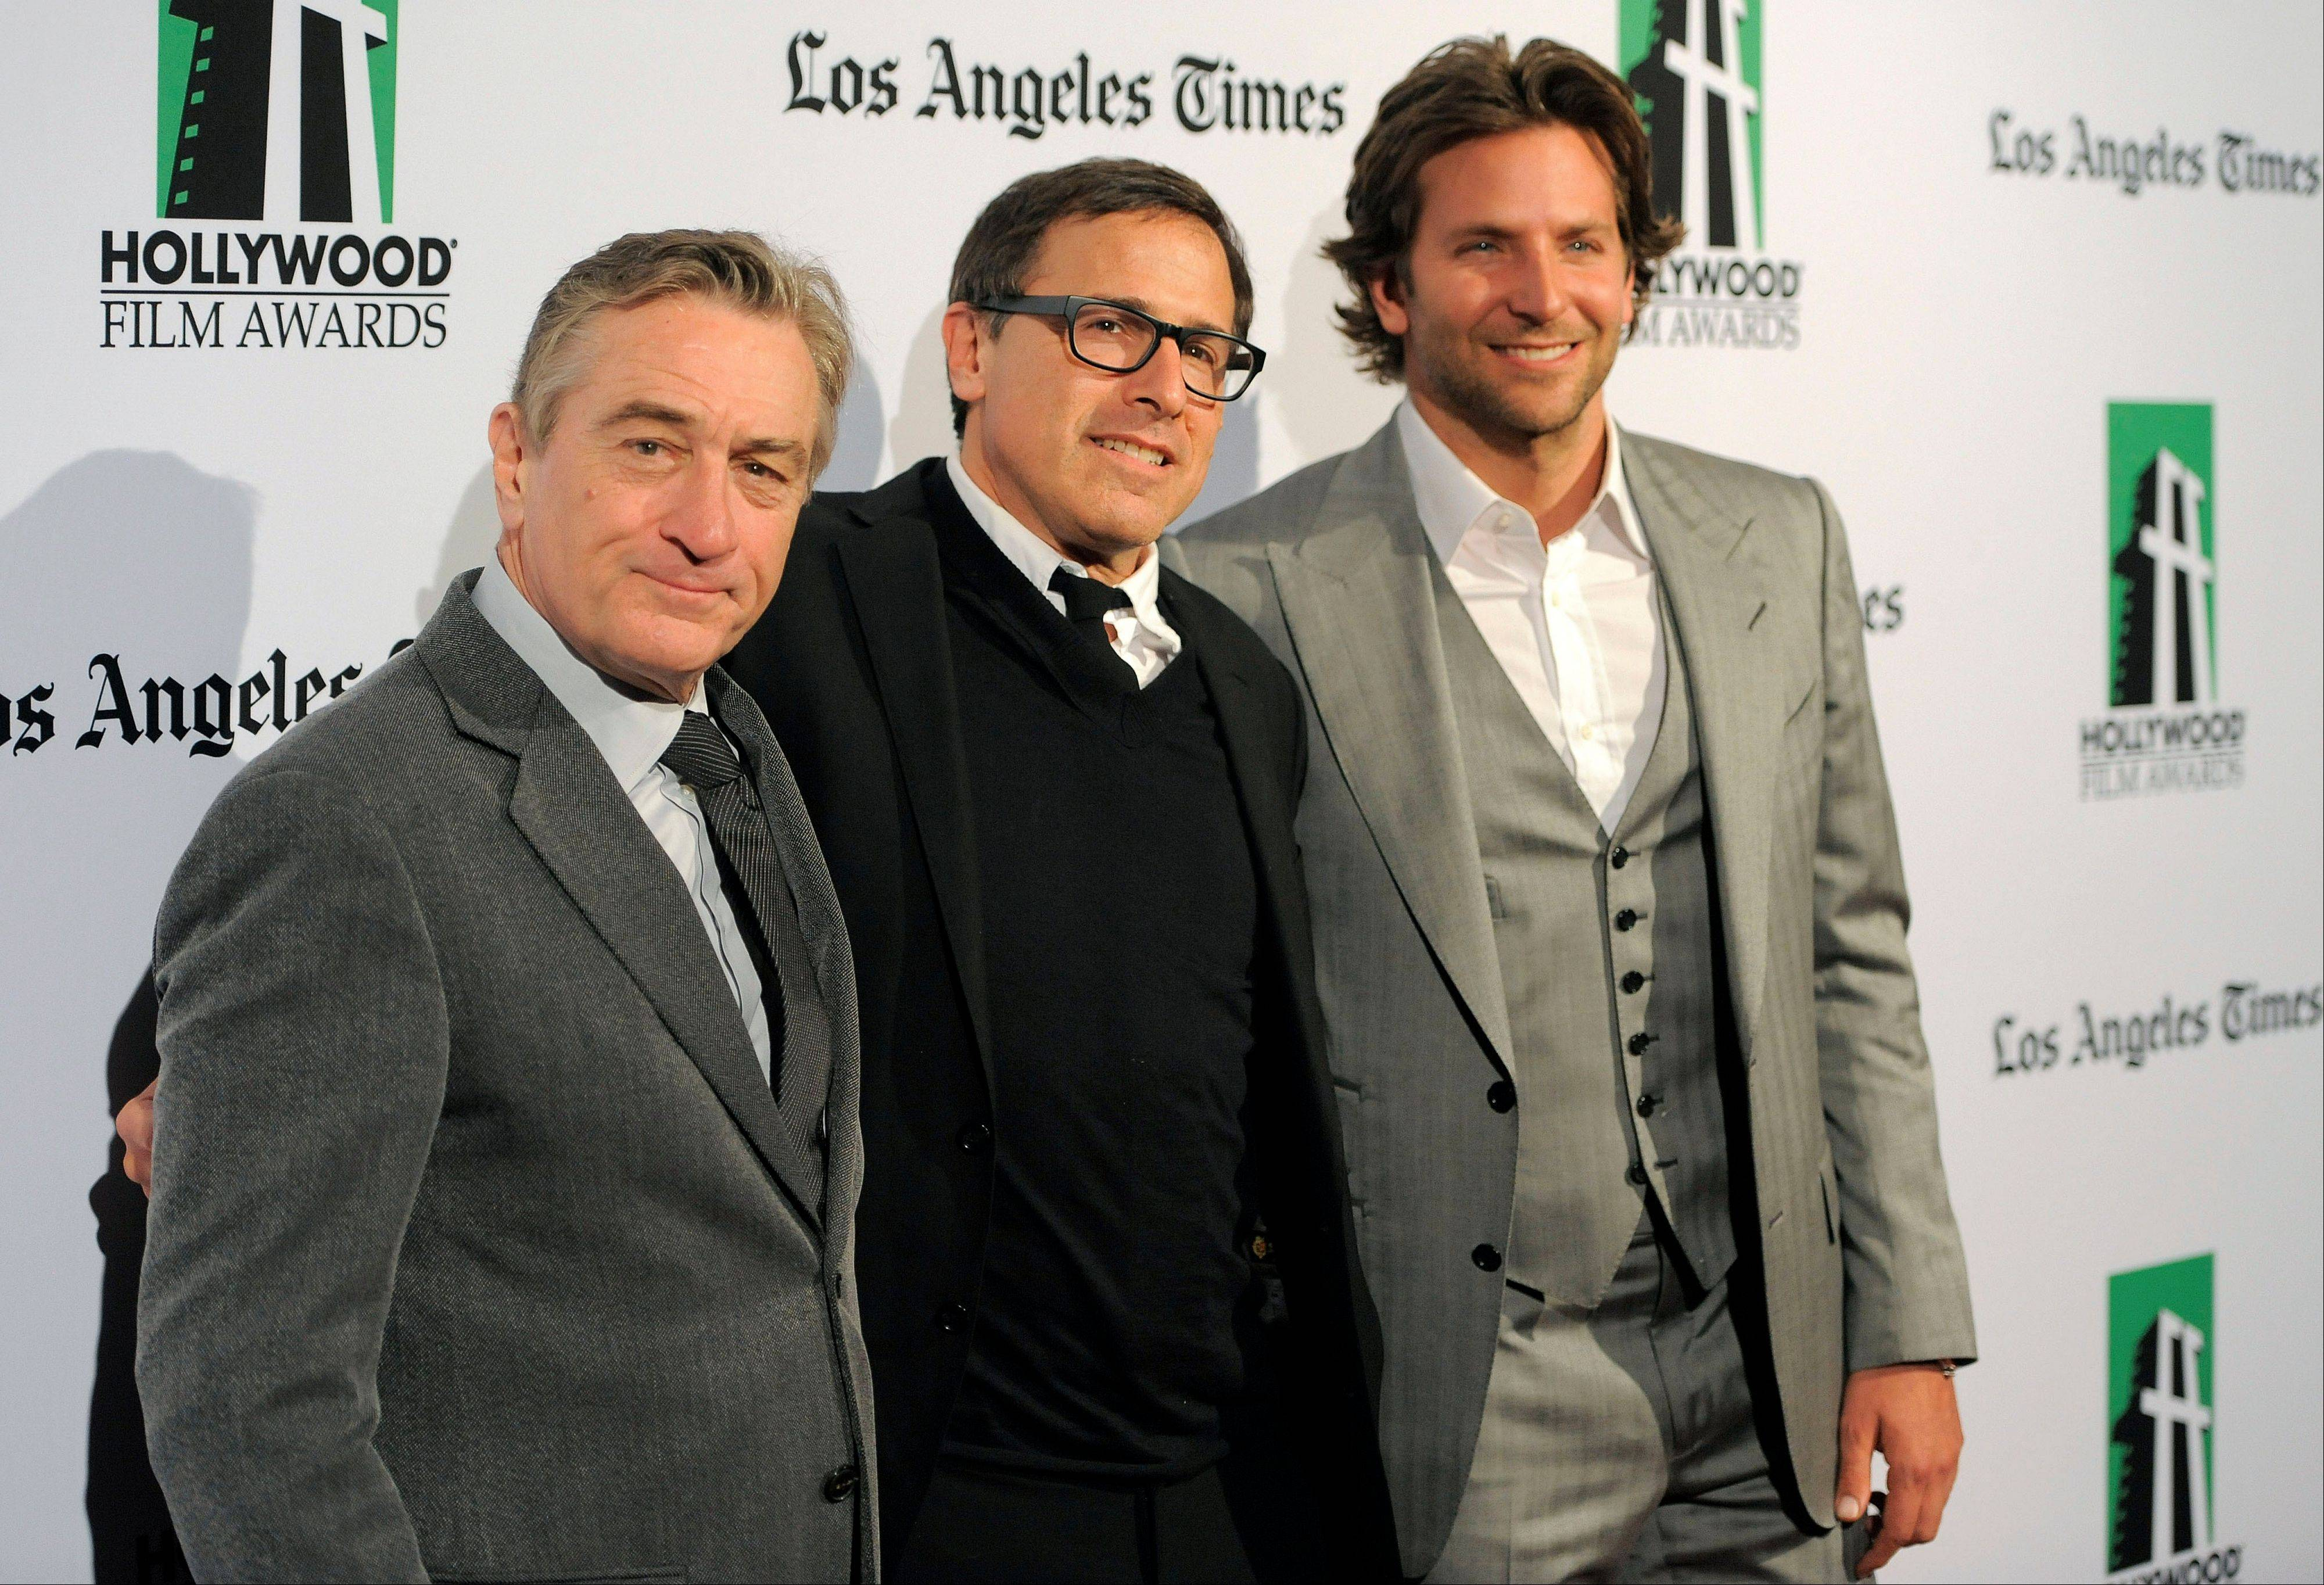 Robert De Niro, left, recipient of the Hollywood Supporting Actor Award, David O. Russell, center, recipient of the Hollywood Director Award, and Bradley Cooper, recipient of the Hollywood Actor Award, at the 16th Annual Hollywood Film Awards Gala on Monday.